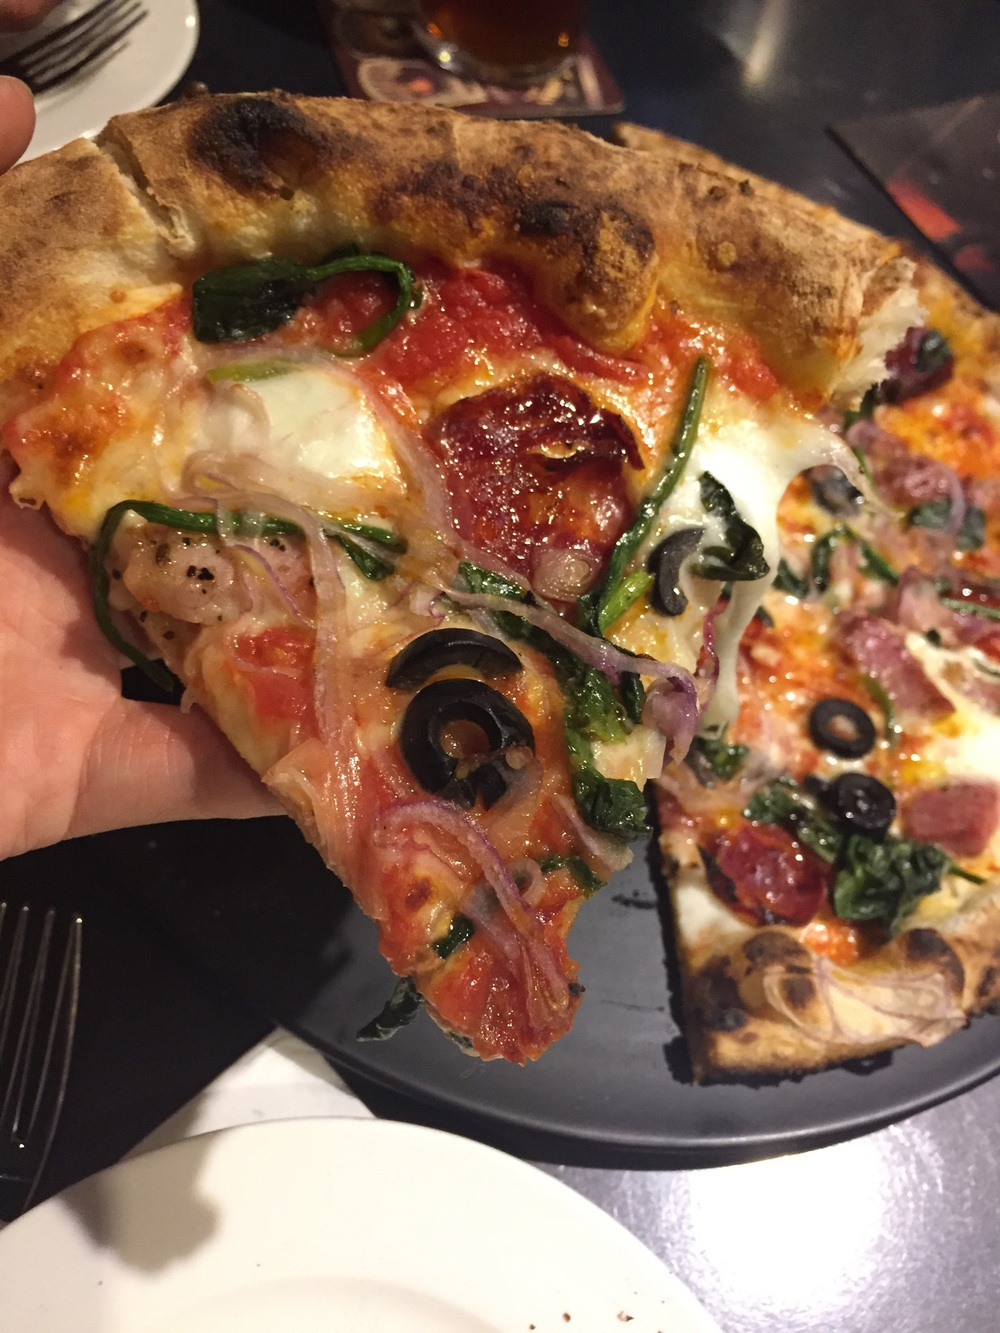 Neapolitan pizza is characterized as having more sauce than cheese, therefore leaving the middle of the pie typically wet or soggy, which is why the sizes are generally smaller, more like a personal pizza size. They are cooked at very high temperatures for more than a minute and a half to get a perfect crispy yet chewy crust with the cheese just bubbling.